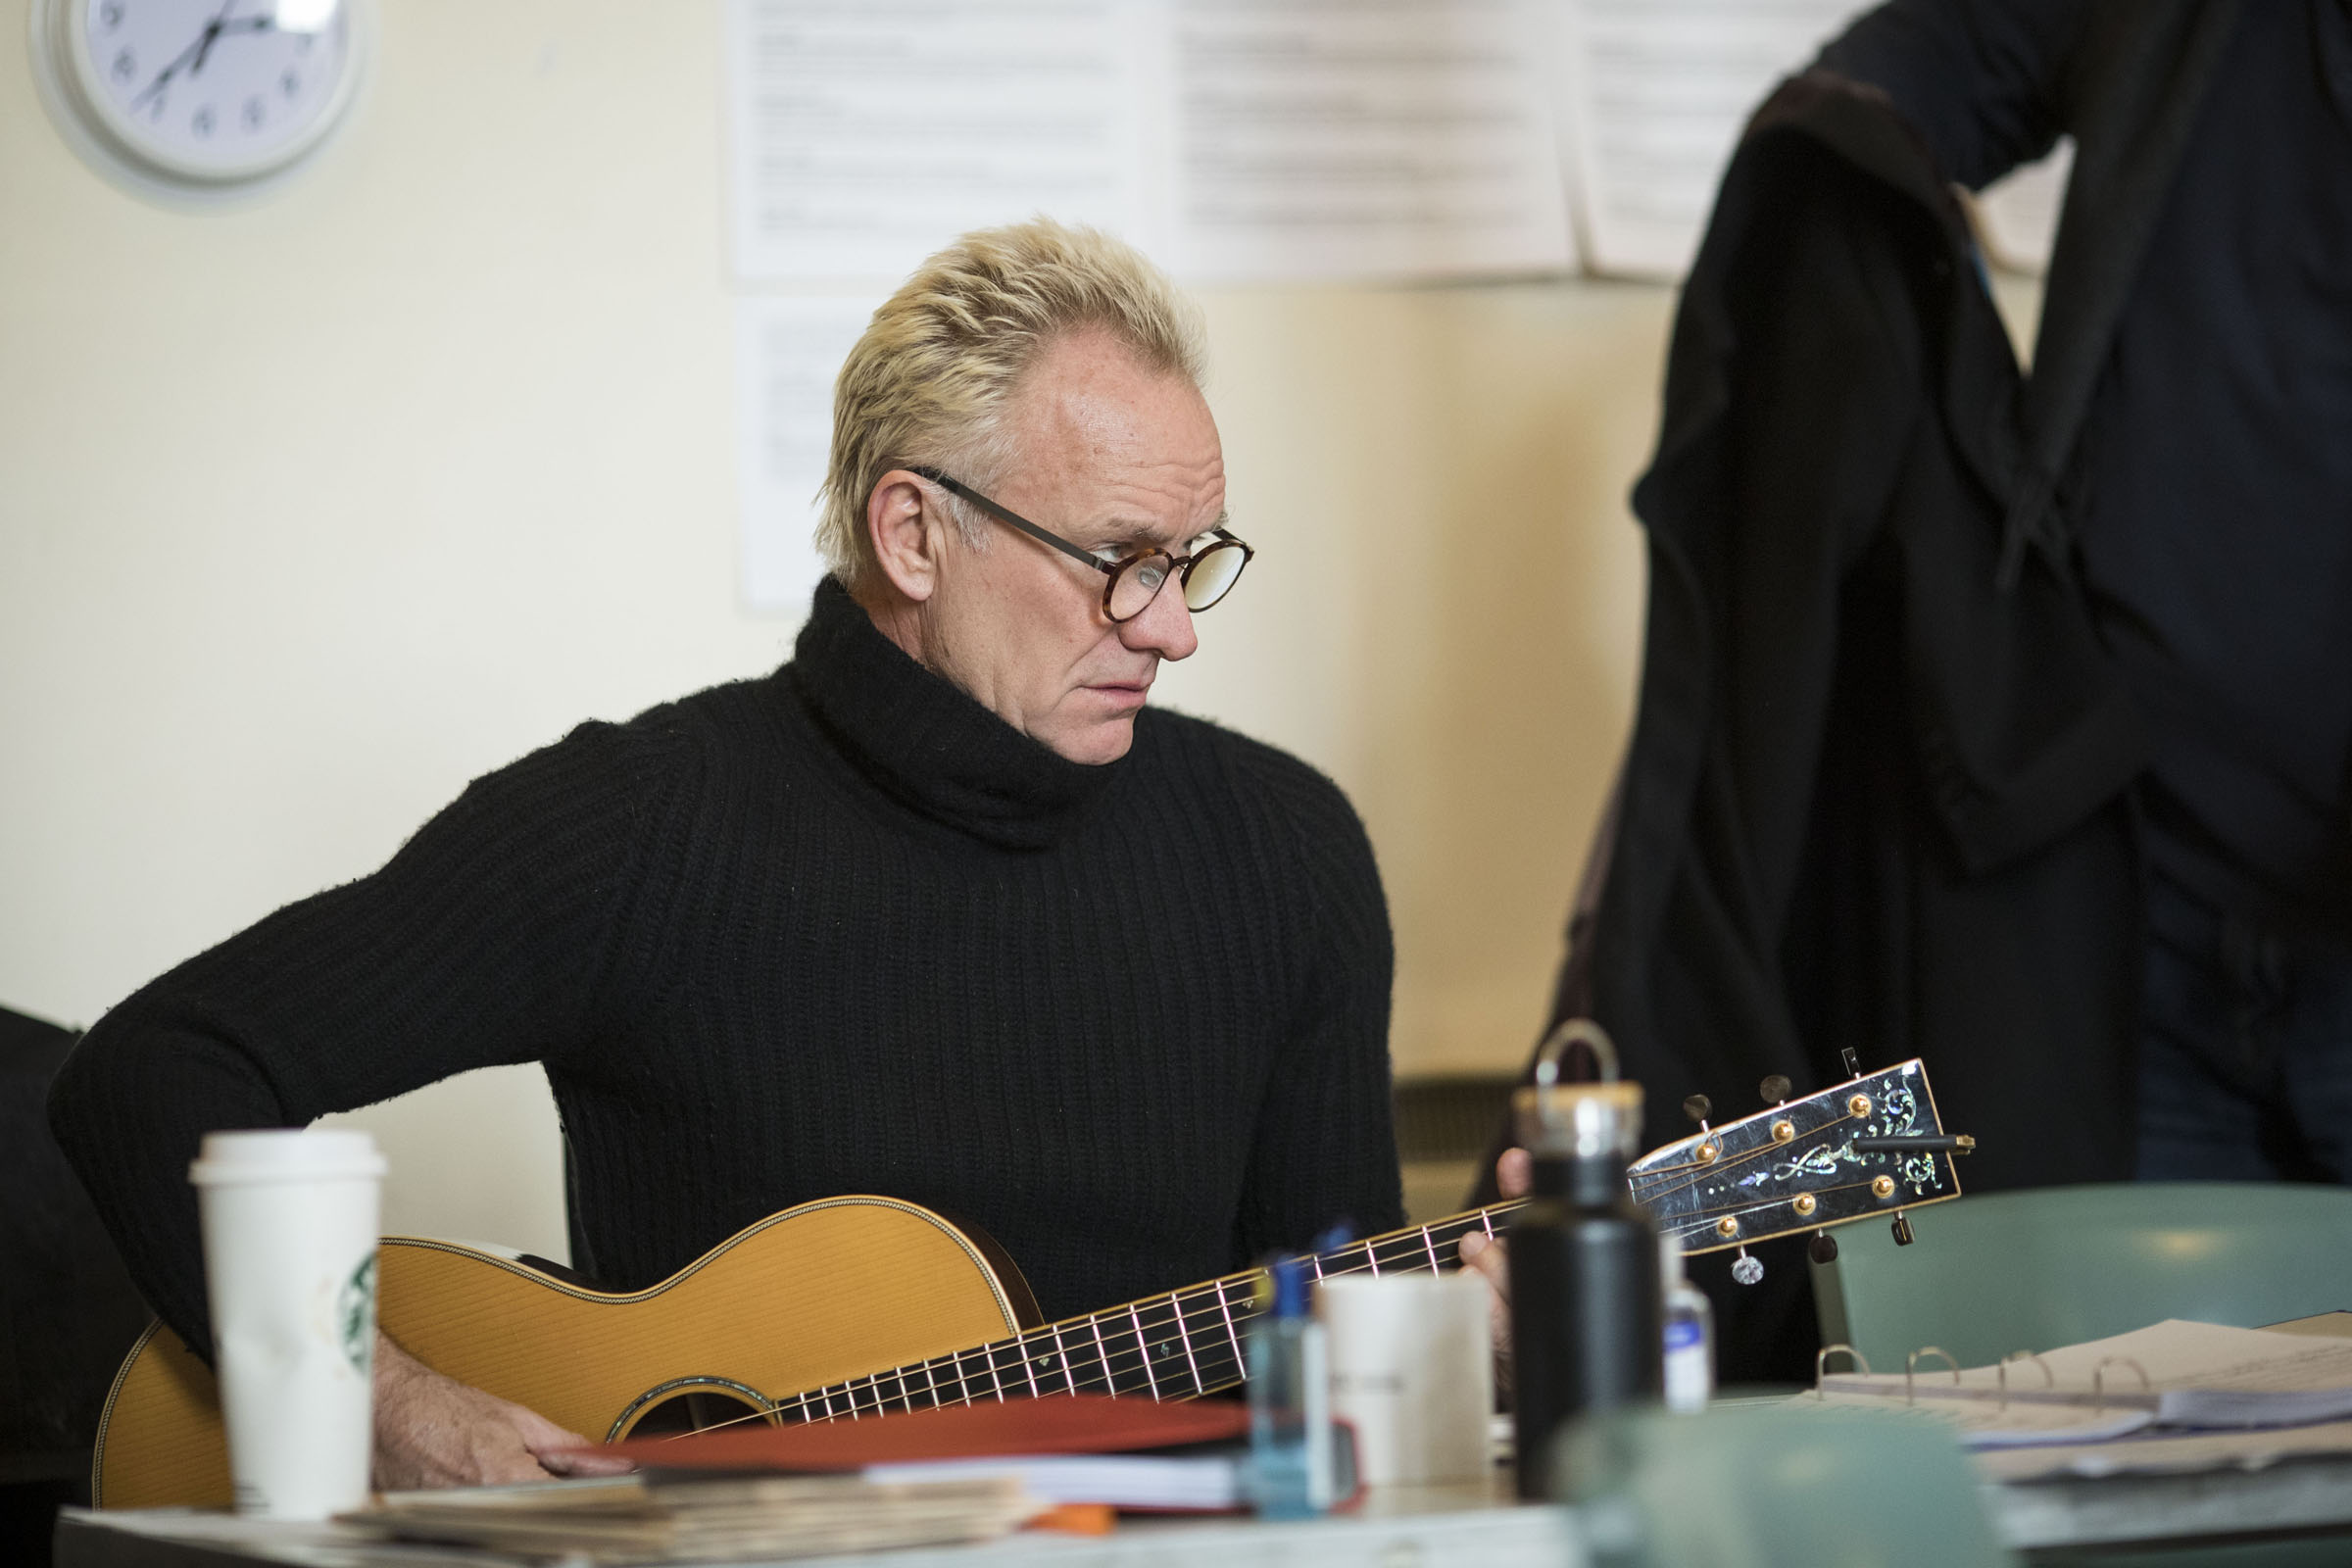 Sting plays his guitar during rehearsals for The Last Ship